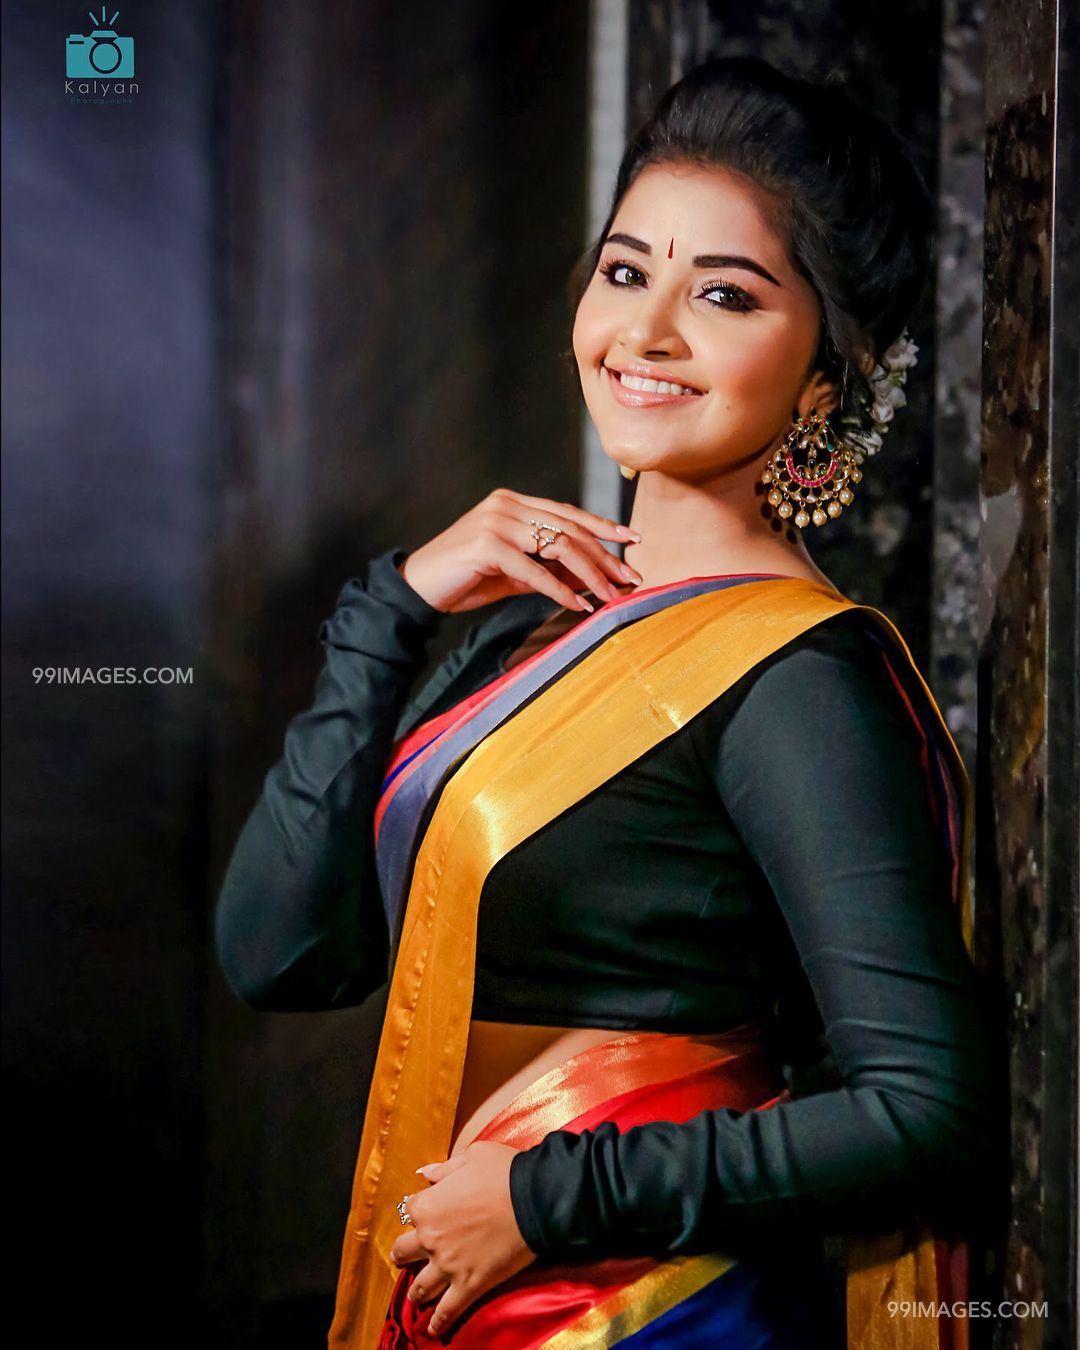 Anupama Parameswaran Beautiful HD Photoshoot Stills & Mobile Wallpapers HD, WhatsApp DP (1080p) (19115) - Anupama Parameswaran